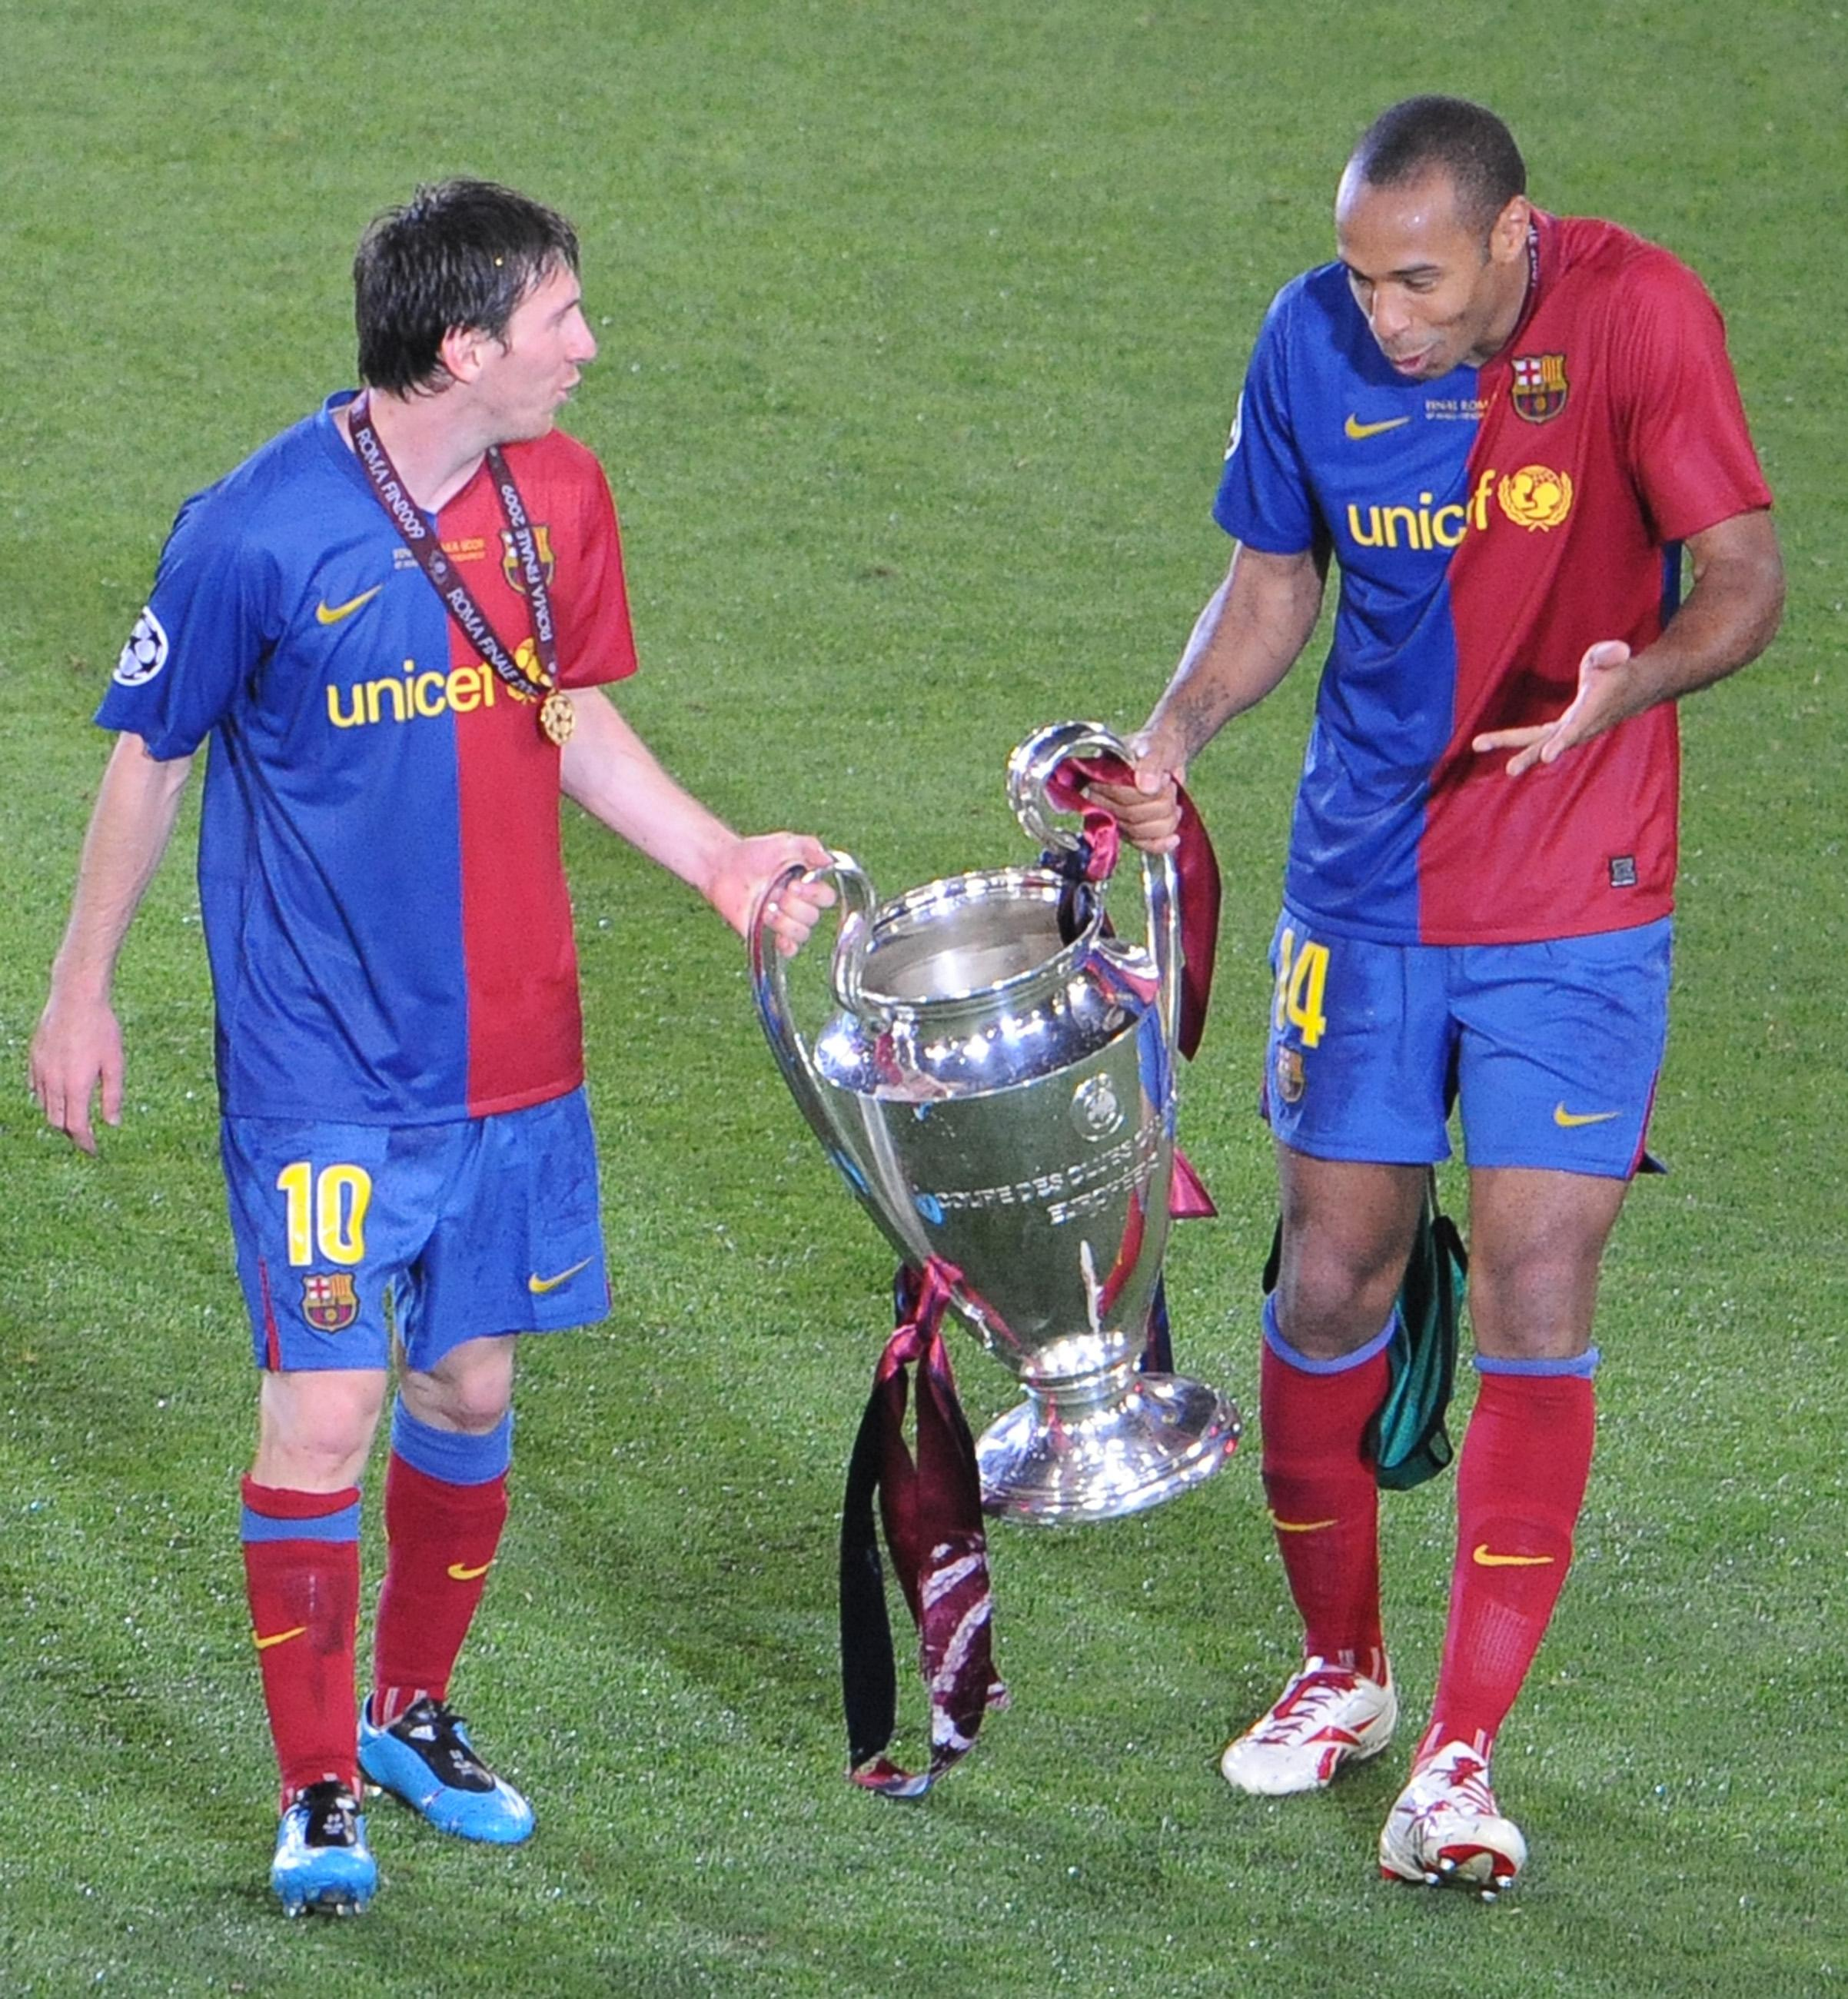 Henry and Messi had great success at Barca, but it was one goal in particular that the French ace remembers for being 'not normal'